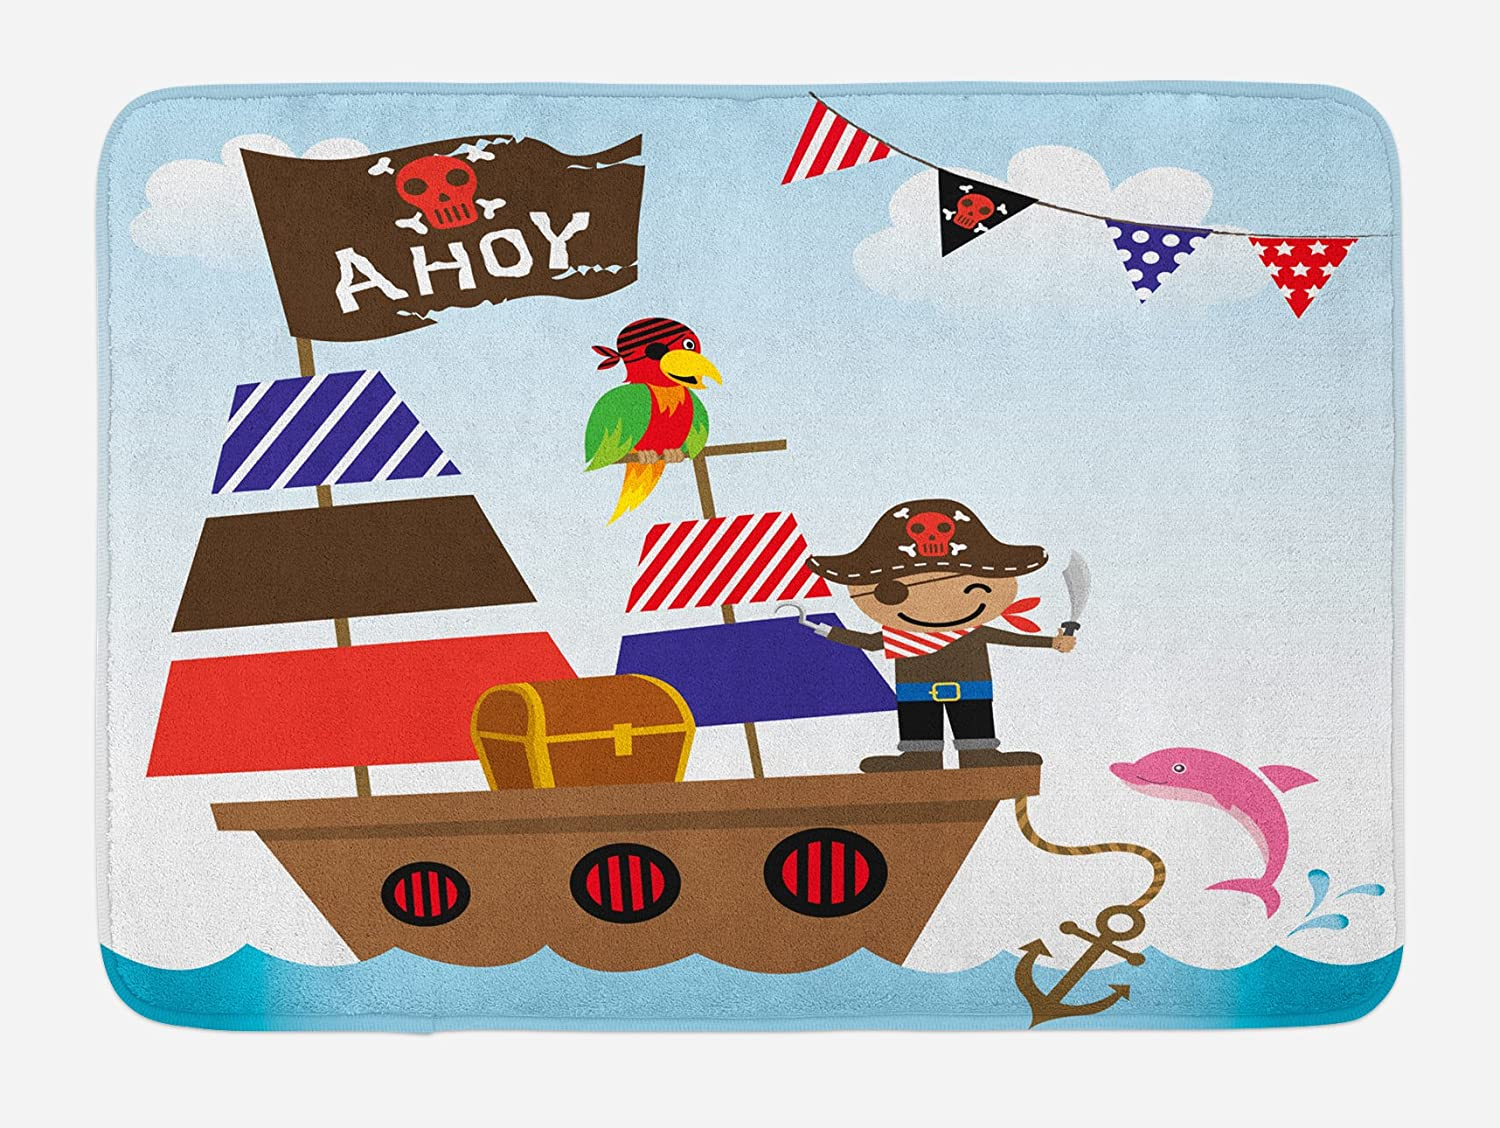 "Ambesonne Ahoy Its a Boy Bath Mat, Pirate Kids Treasure Chest Ship on Ocean Background Illustration, Plush Bathroom Decor Mat with Non Slip Backing, 29.5"" X 17.5"", Blue Brown"